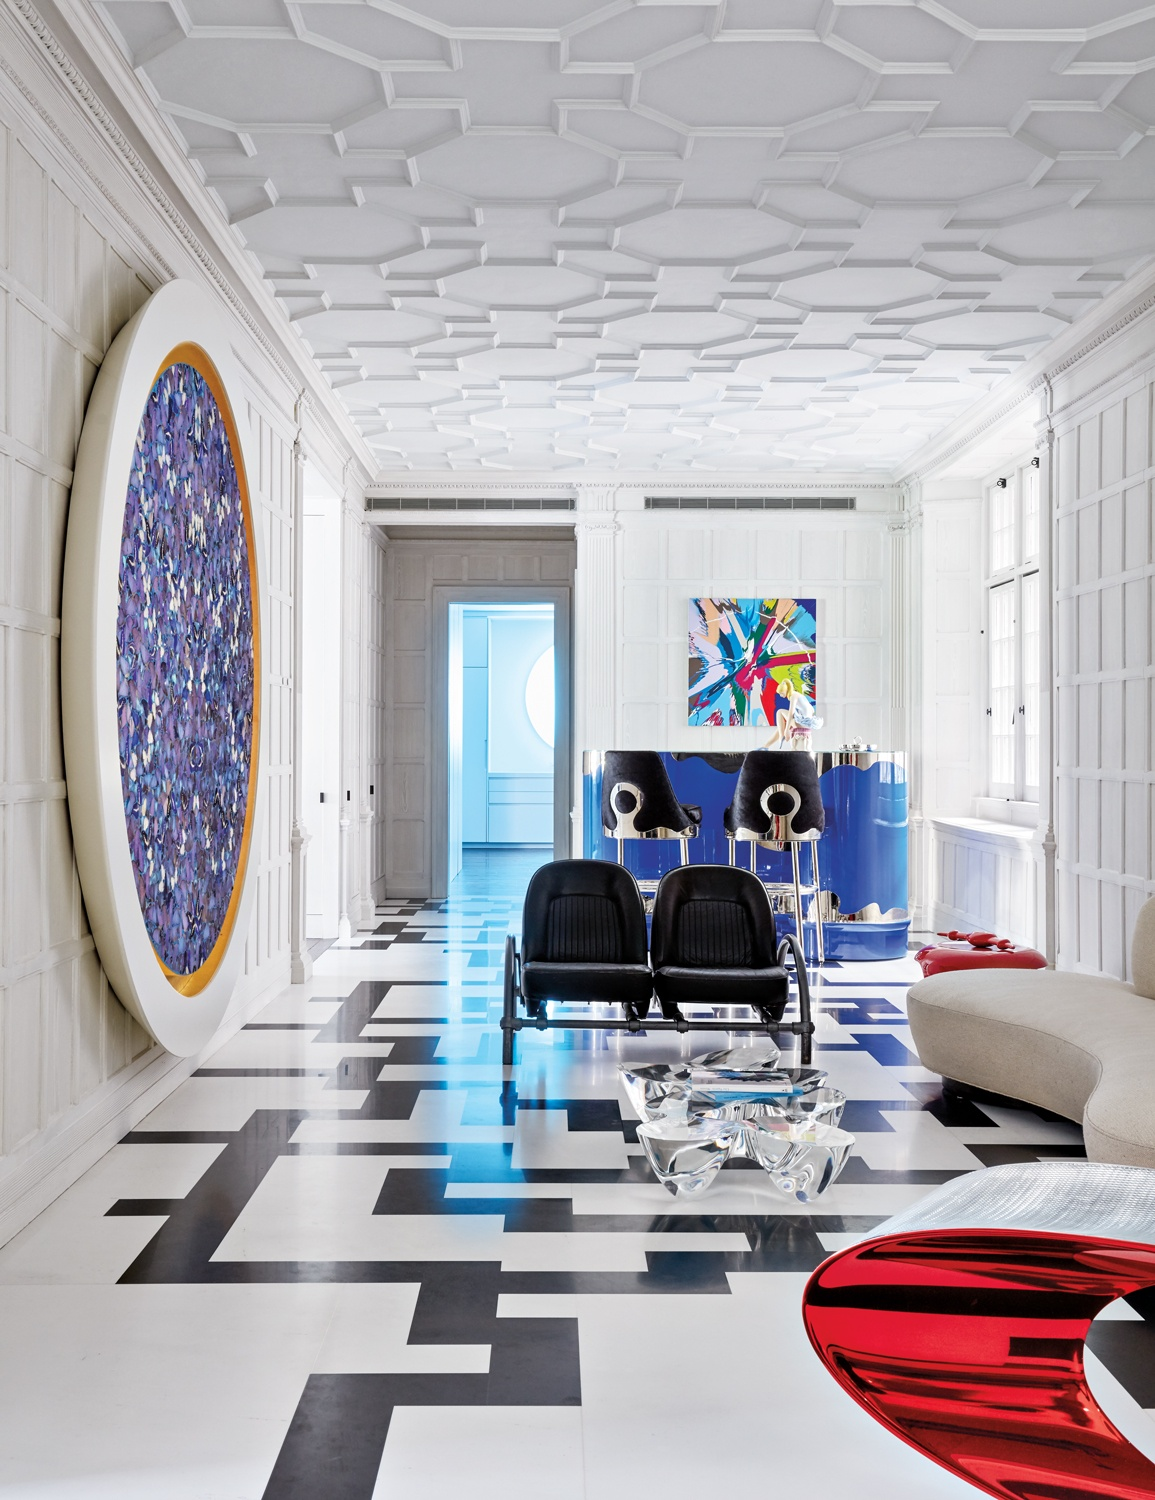 The entrance gallery of Stacey Bronfman's home in a landmark New York City building, designer Jacques Grange